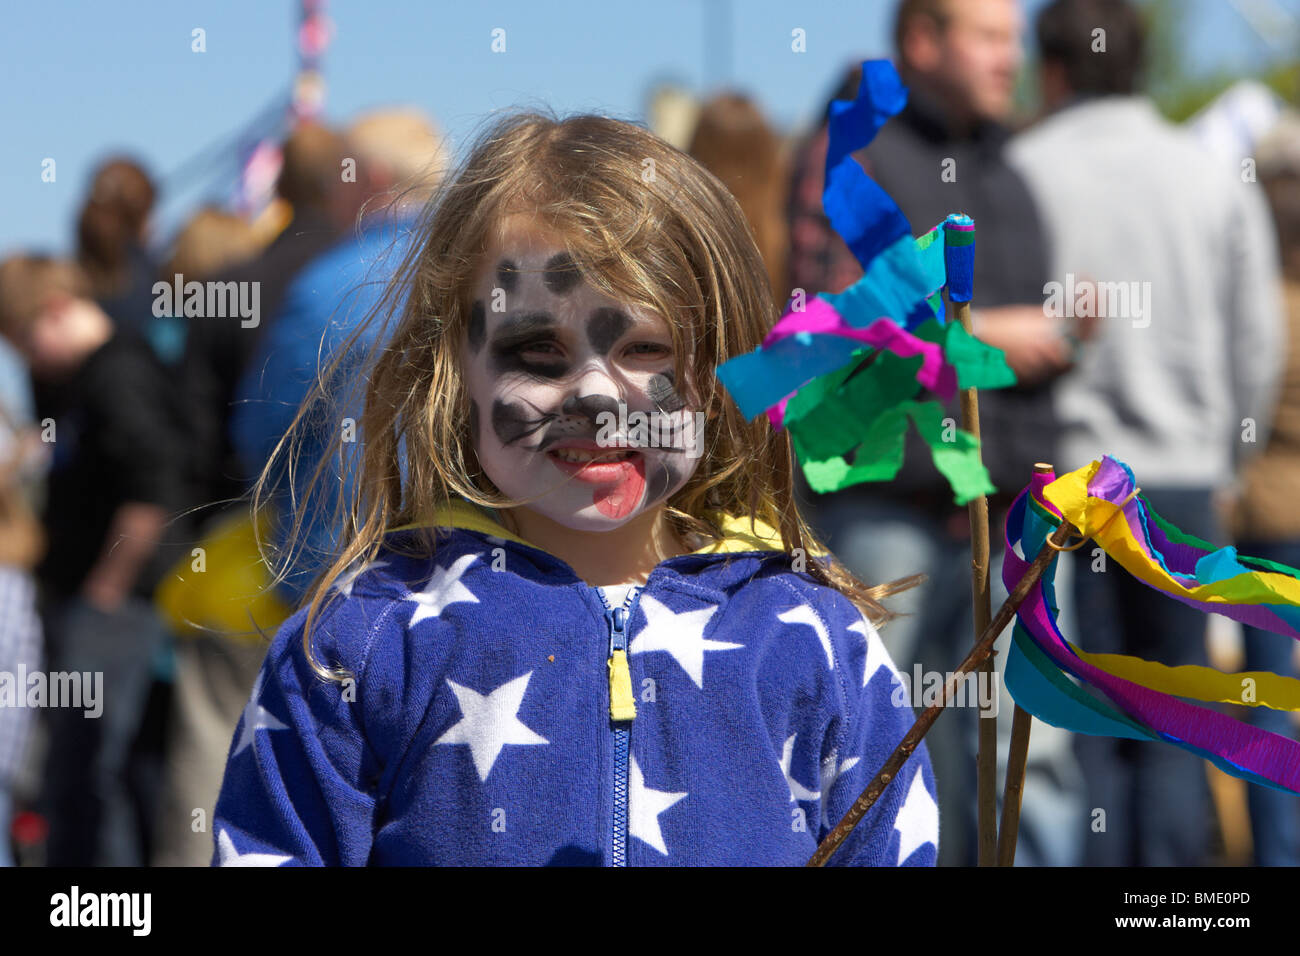 young girl with face painted holding ribbons at a festival on mayday in holywood county down northern ireland - Stock Image